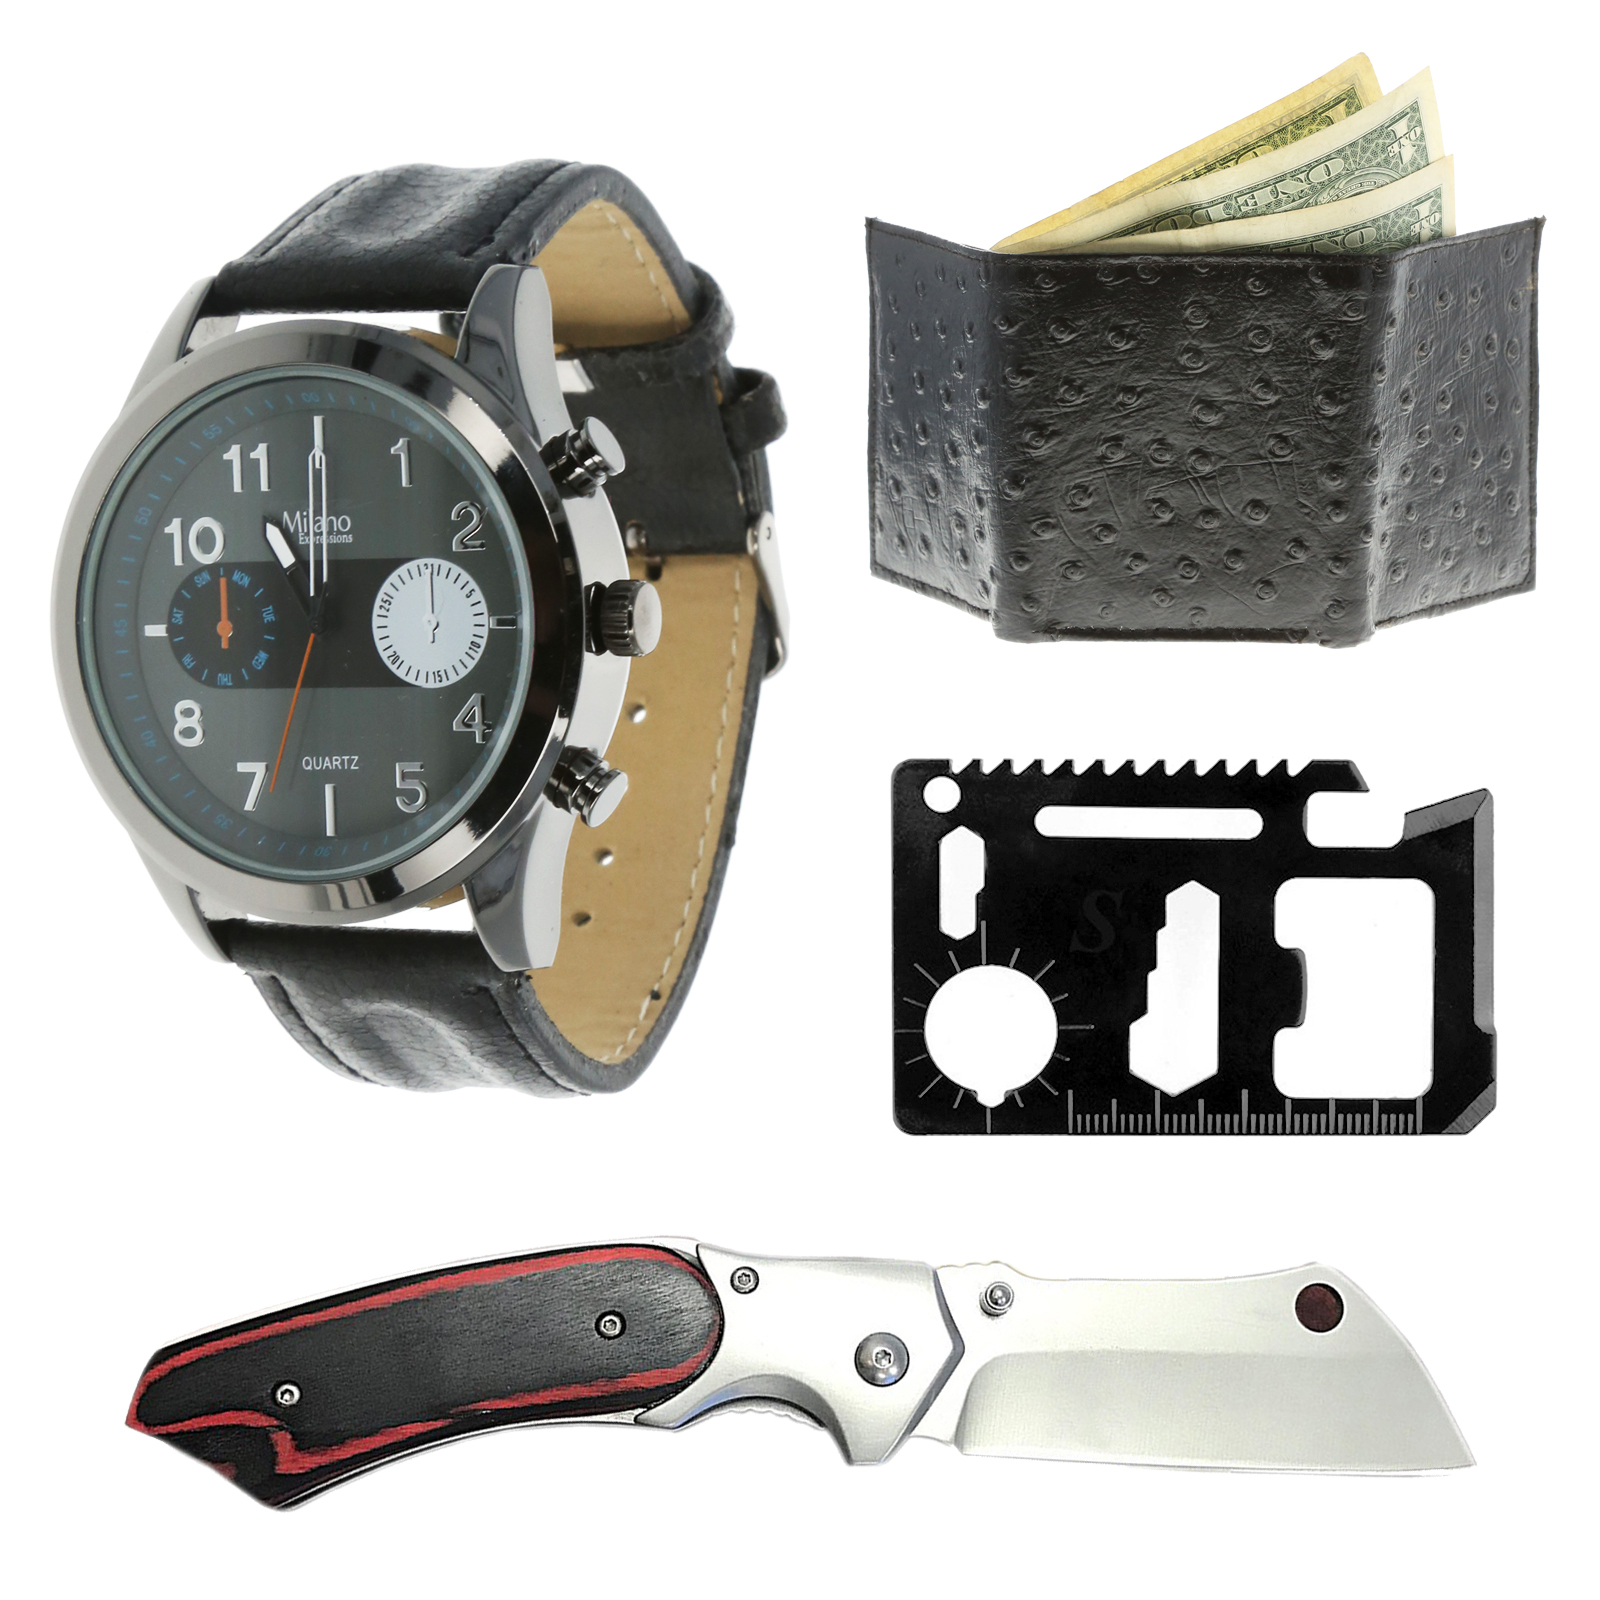 Gentlemans S Series Knife Gift Set With Watch Wallet and Multi Tool by ASR Tactical